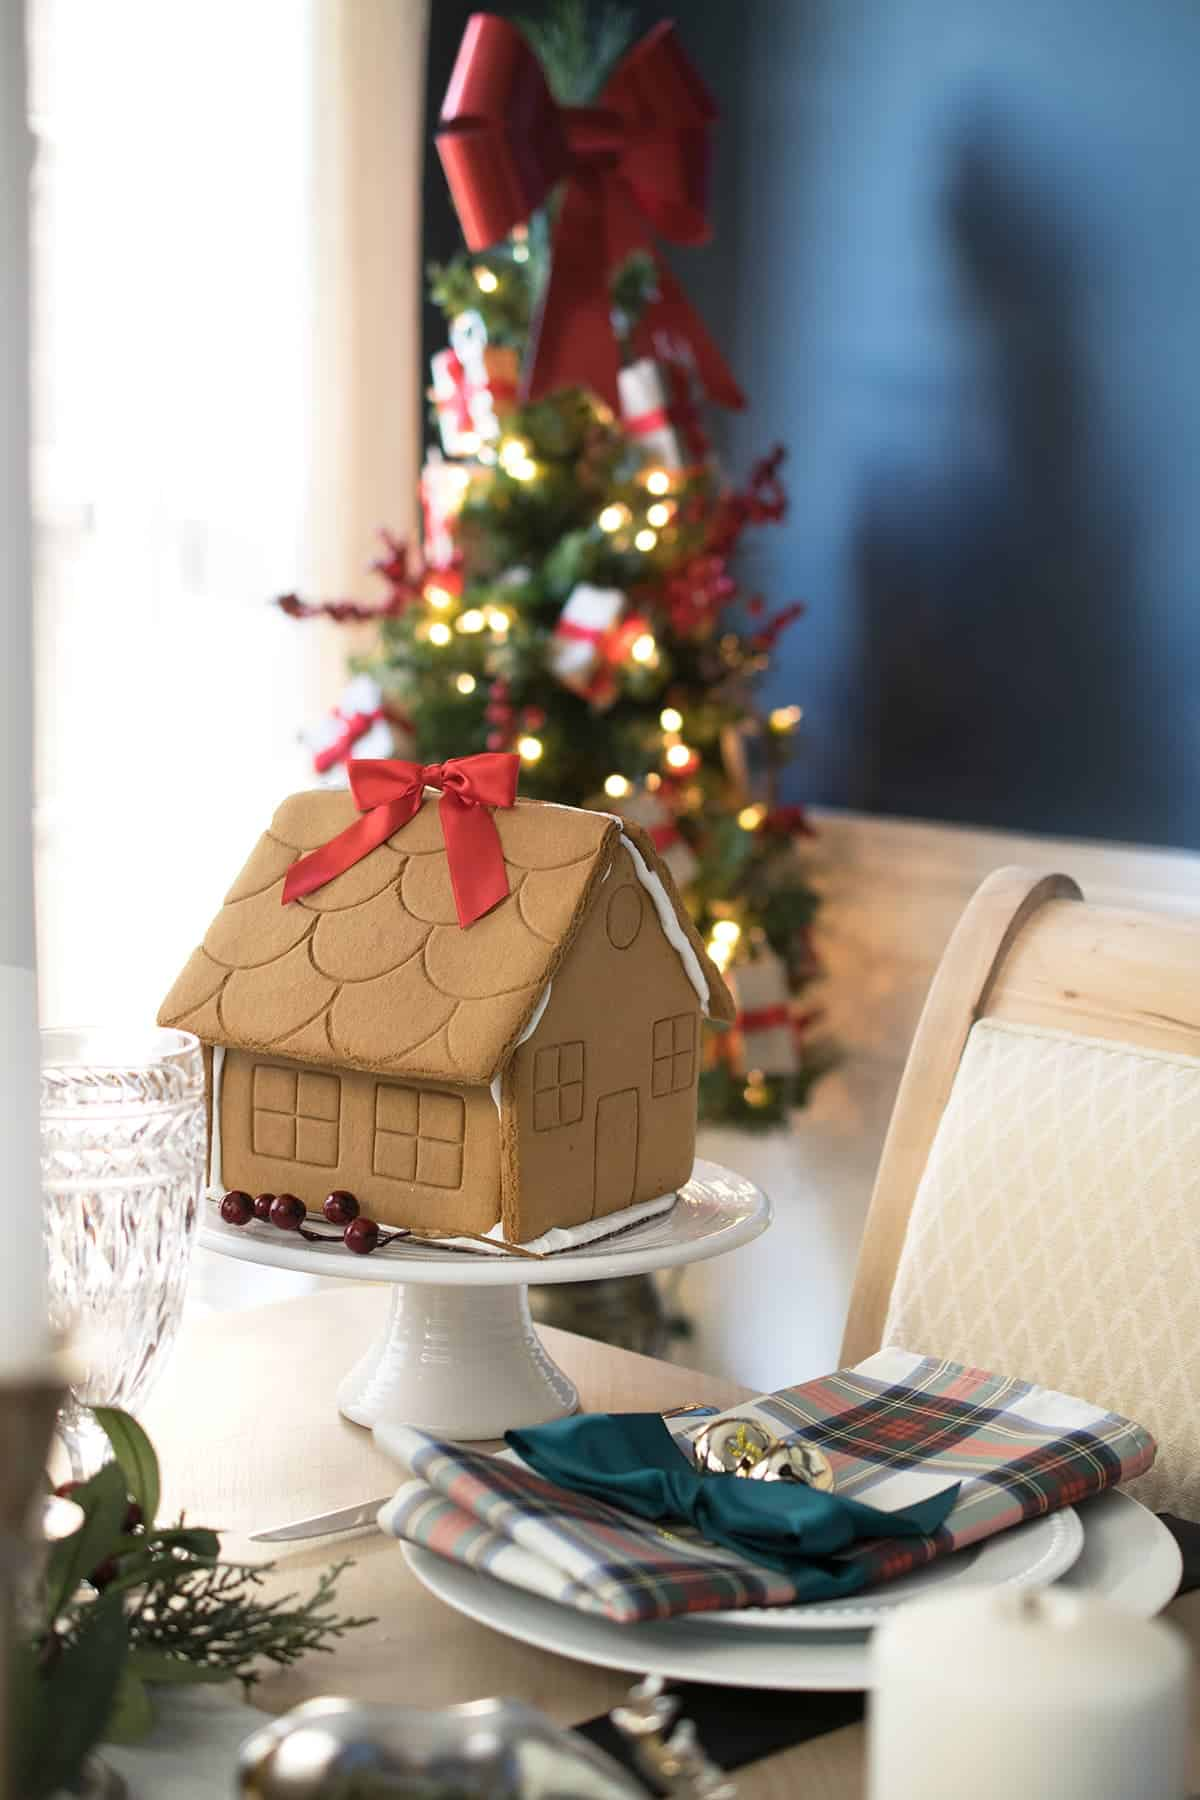 Christmas Table Decoration centerpiece with gingerbread house. Crystal goblets, Tartan plaid napkins tied with green ribbon and jingle bell.